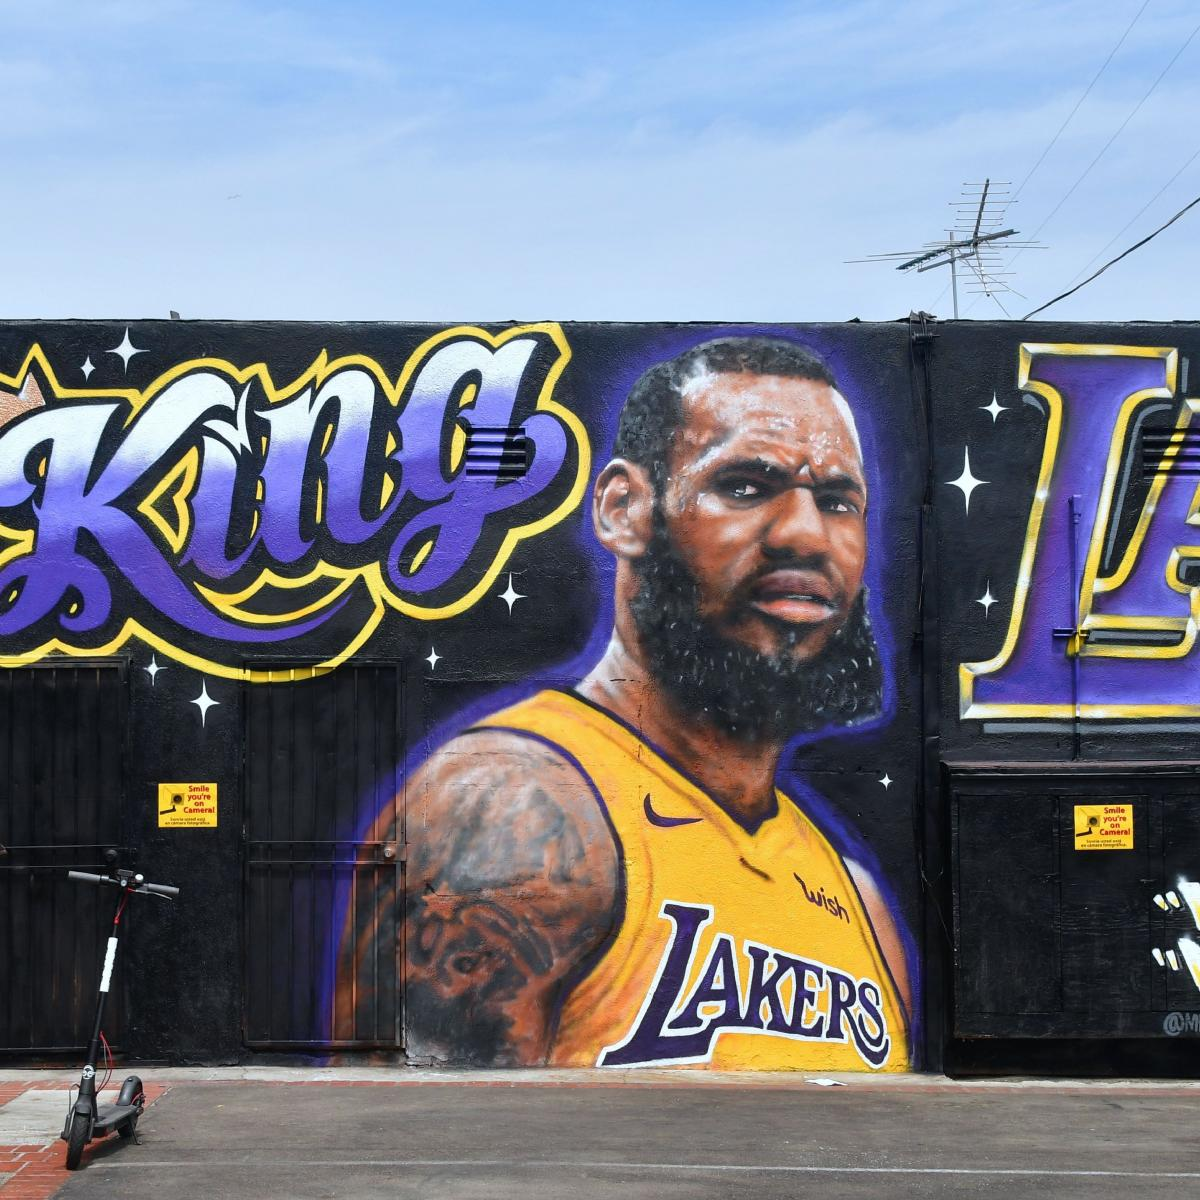 Lakers' LeBron James 'The King of LA' Mural Completely Painted Over